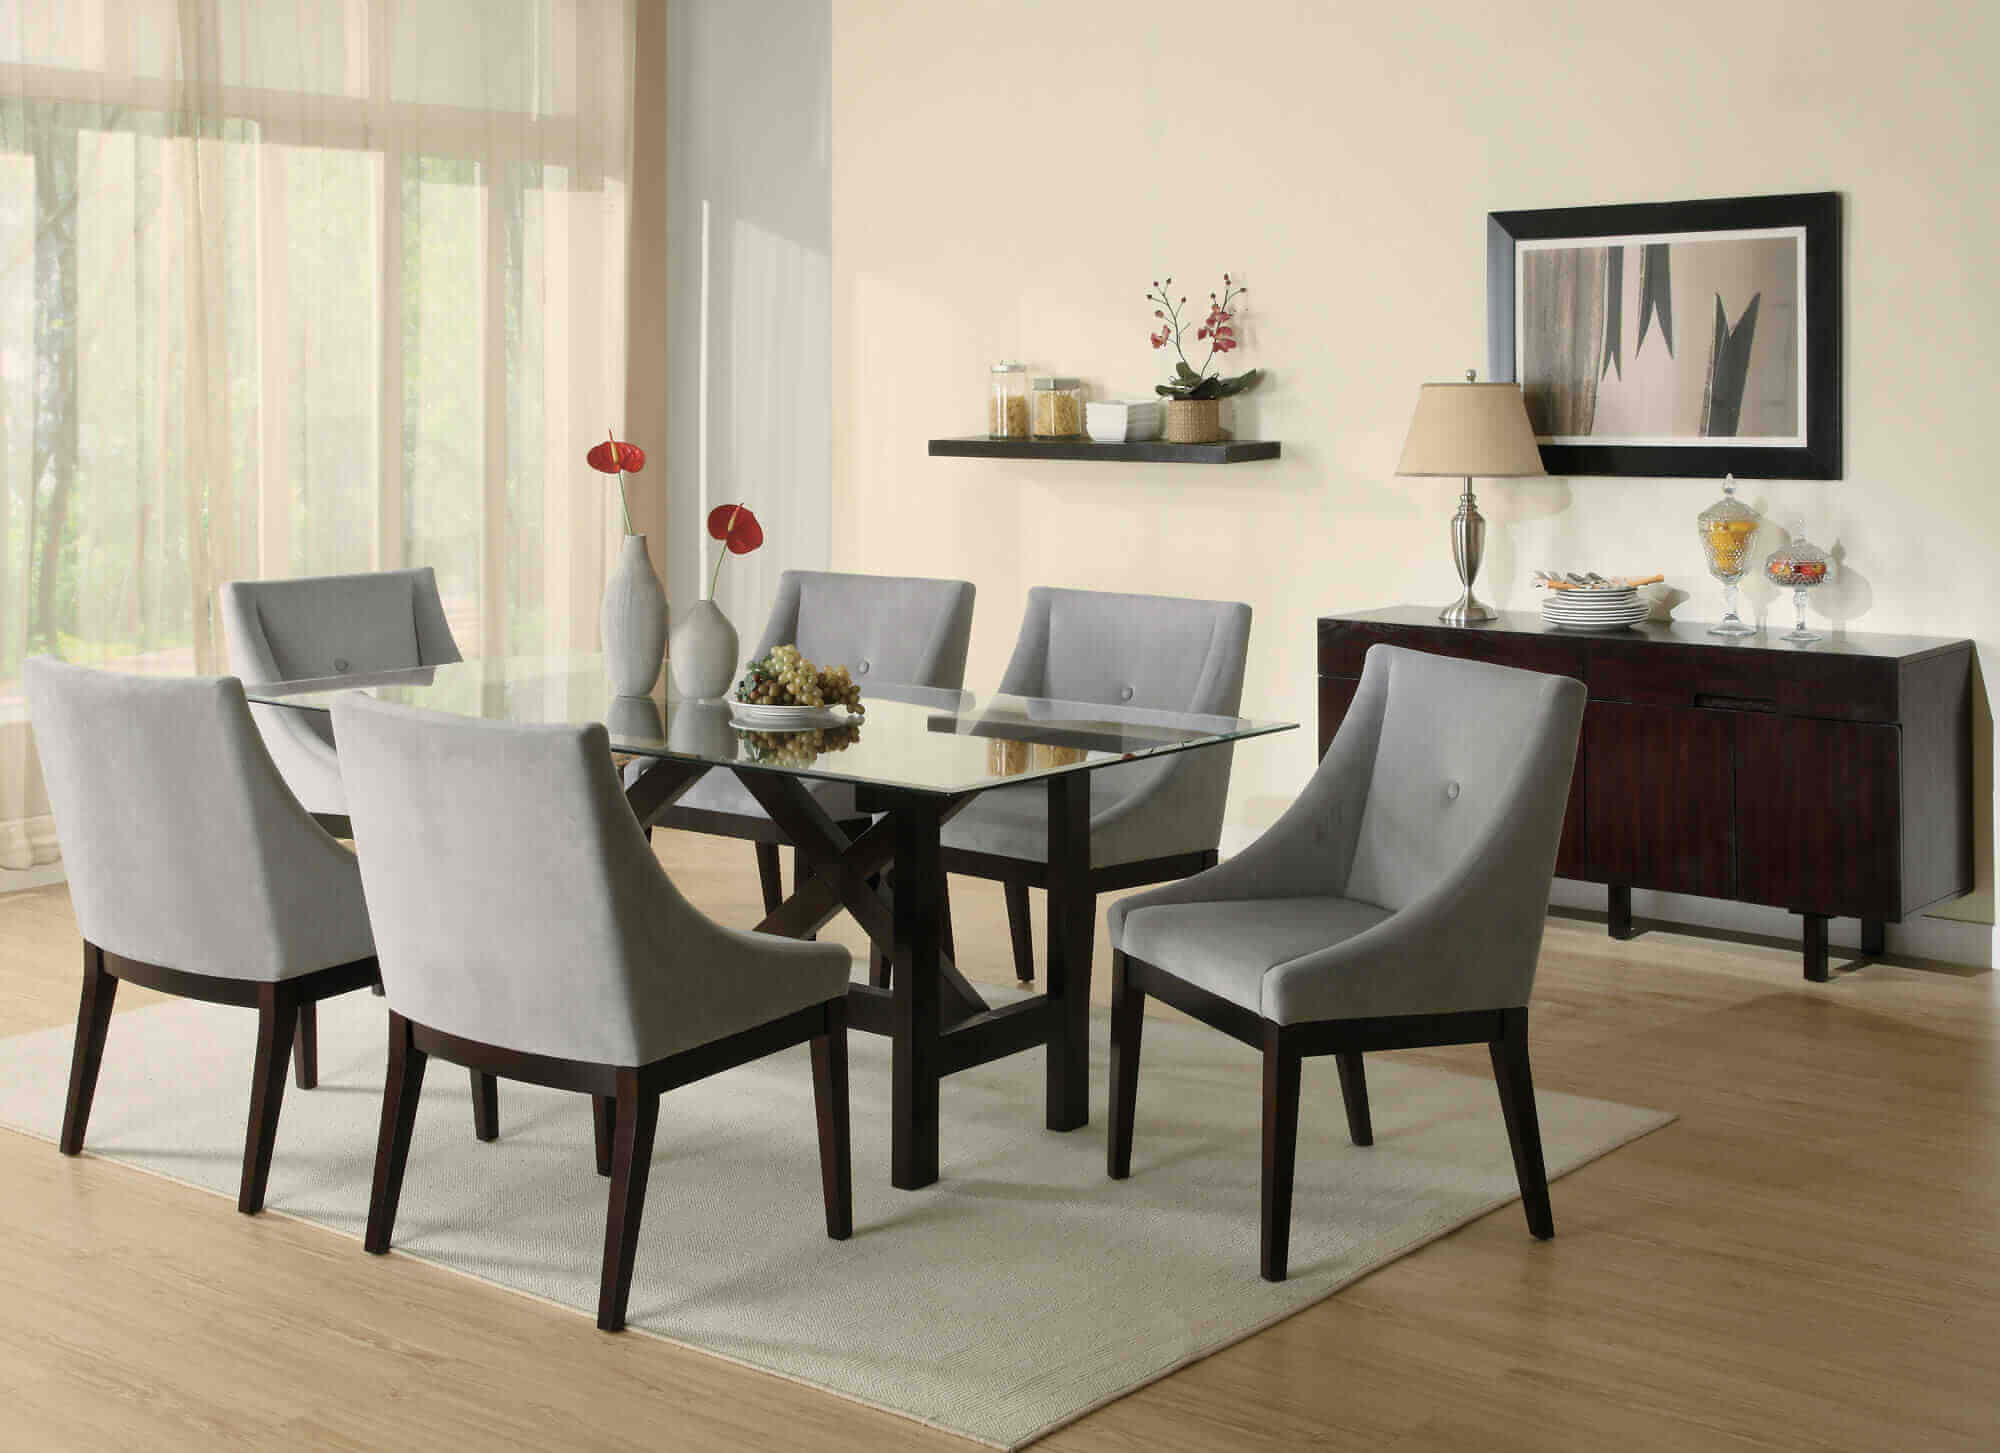 Stylish dining rooms top designers - A small six chair table with a cozy design. The table is made of glass and the table and chairs feet are made of black wood. This is in contrast with the grey fabric and carpet.